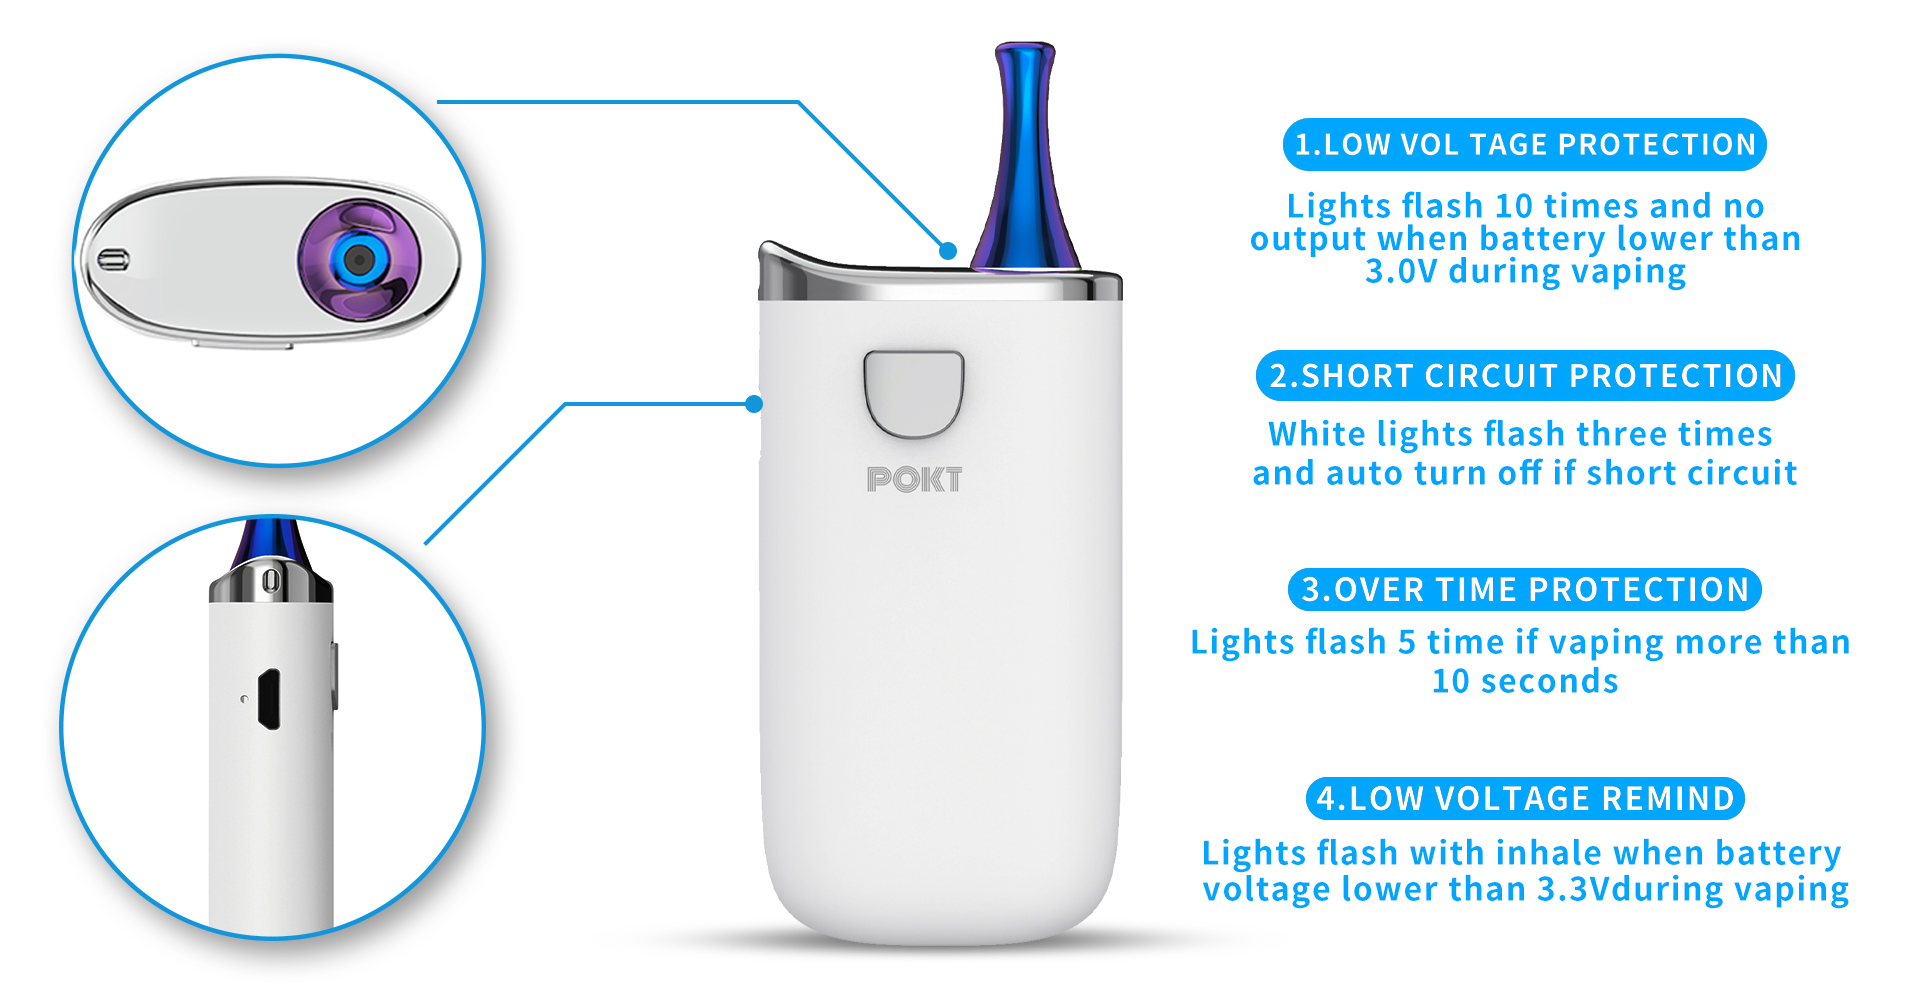 muilt protection of POKT Portable vaporizer